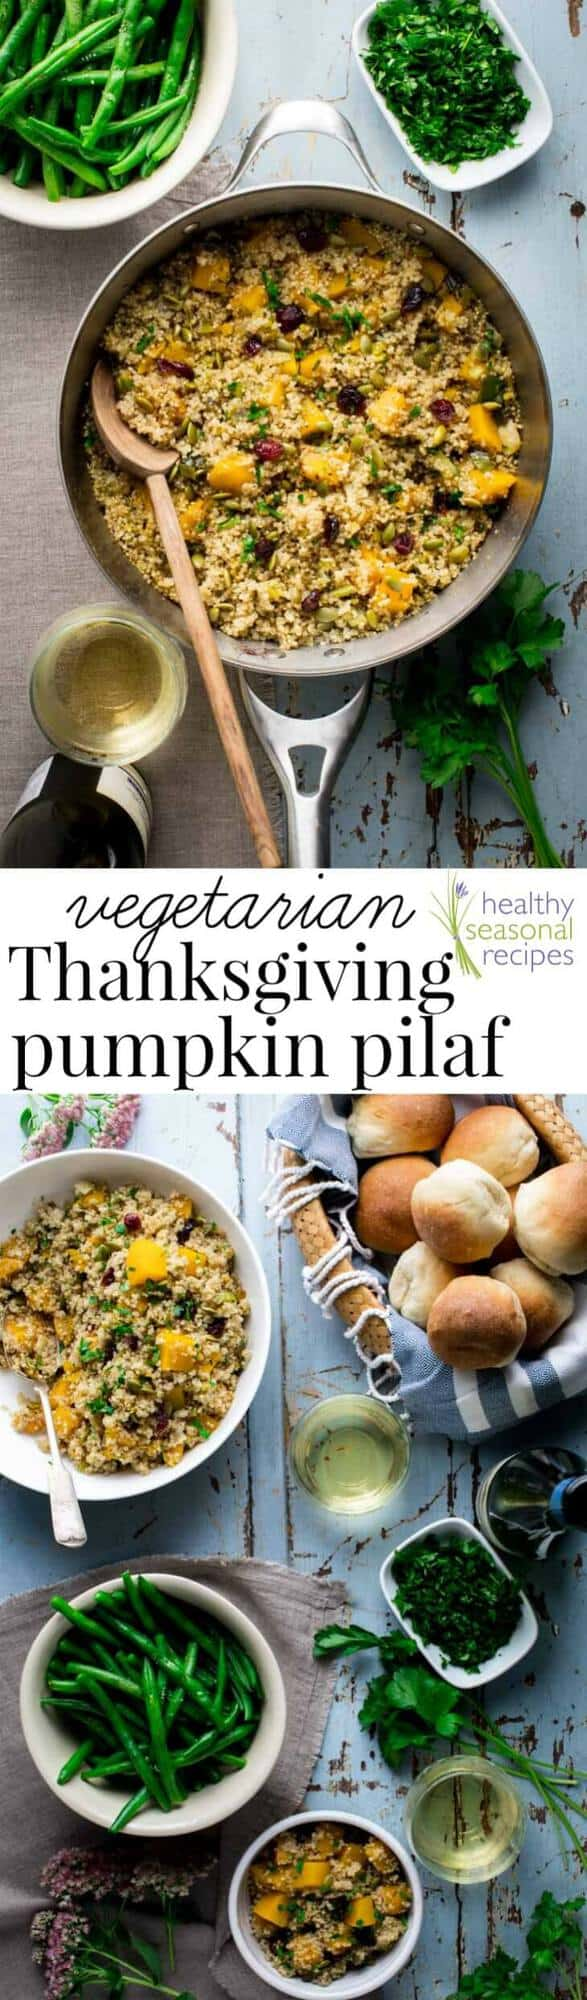 This Vegetarian Thanksgiving Pilaf with Pumpkin and Quinoa is a simple stove-top, one-pot recipe that is too good to save just for Thanksgiving! Try it for a gluten-free vegan weeknight meal while fresh pumpkin is in season. #vegetarian #thanksgiving #vegan #quinoa #onepot #stovetop #glutenfree #pumpkin #healthy #sidedish #weeknight #healthyseasonal